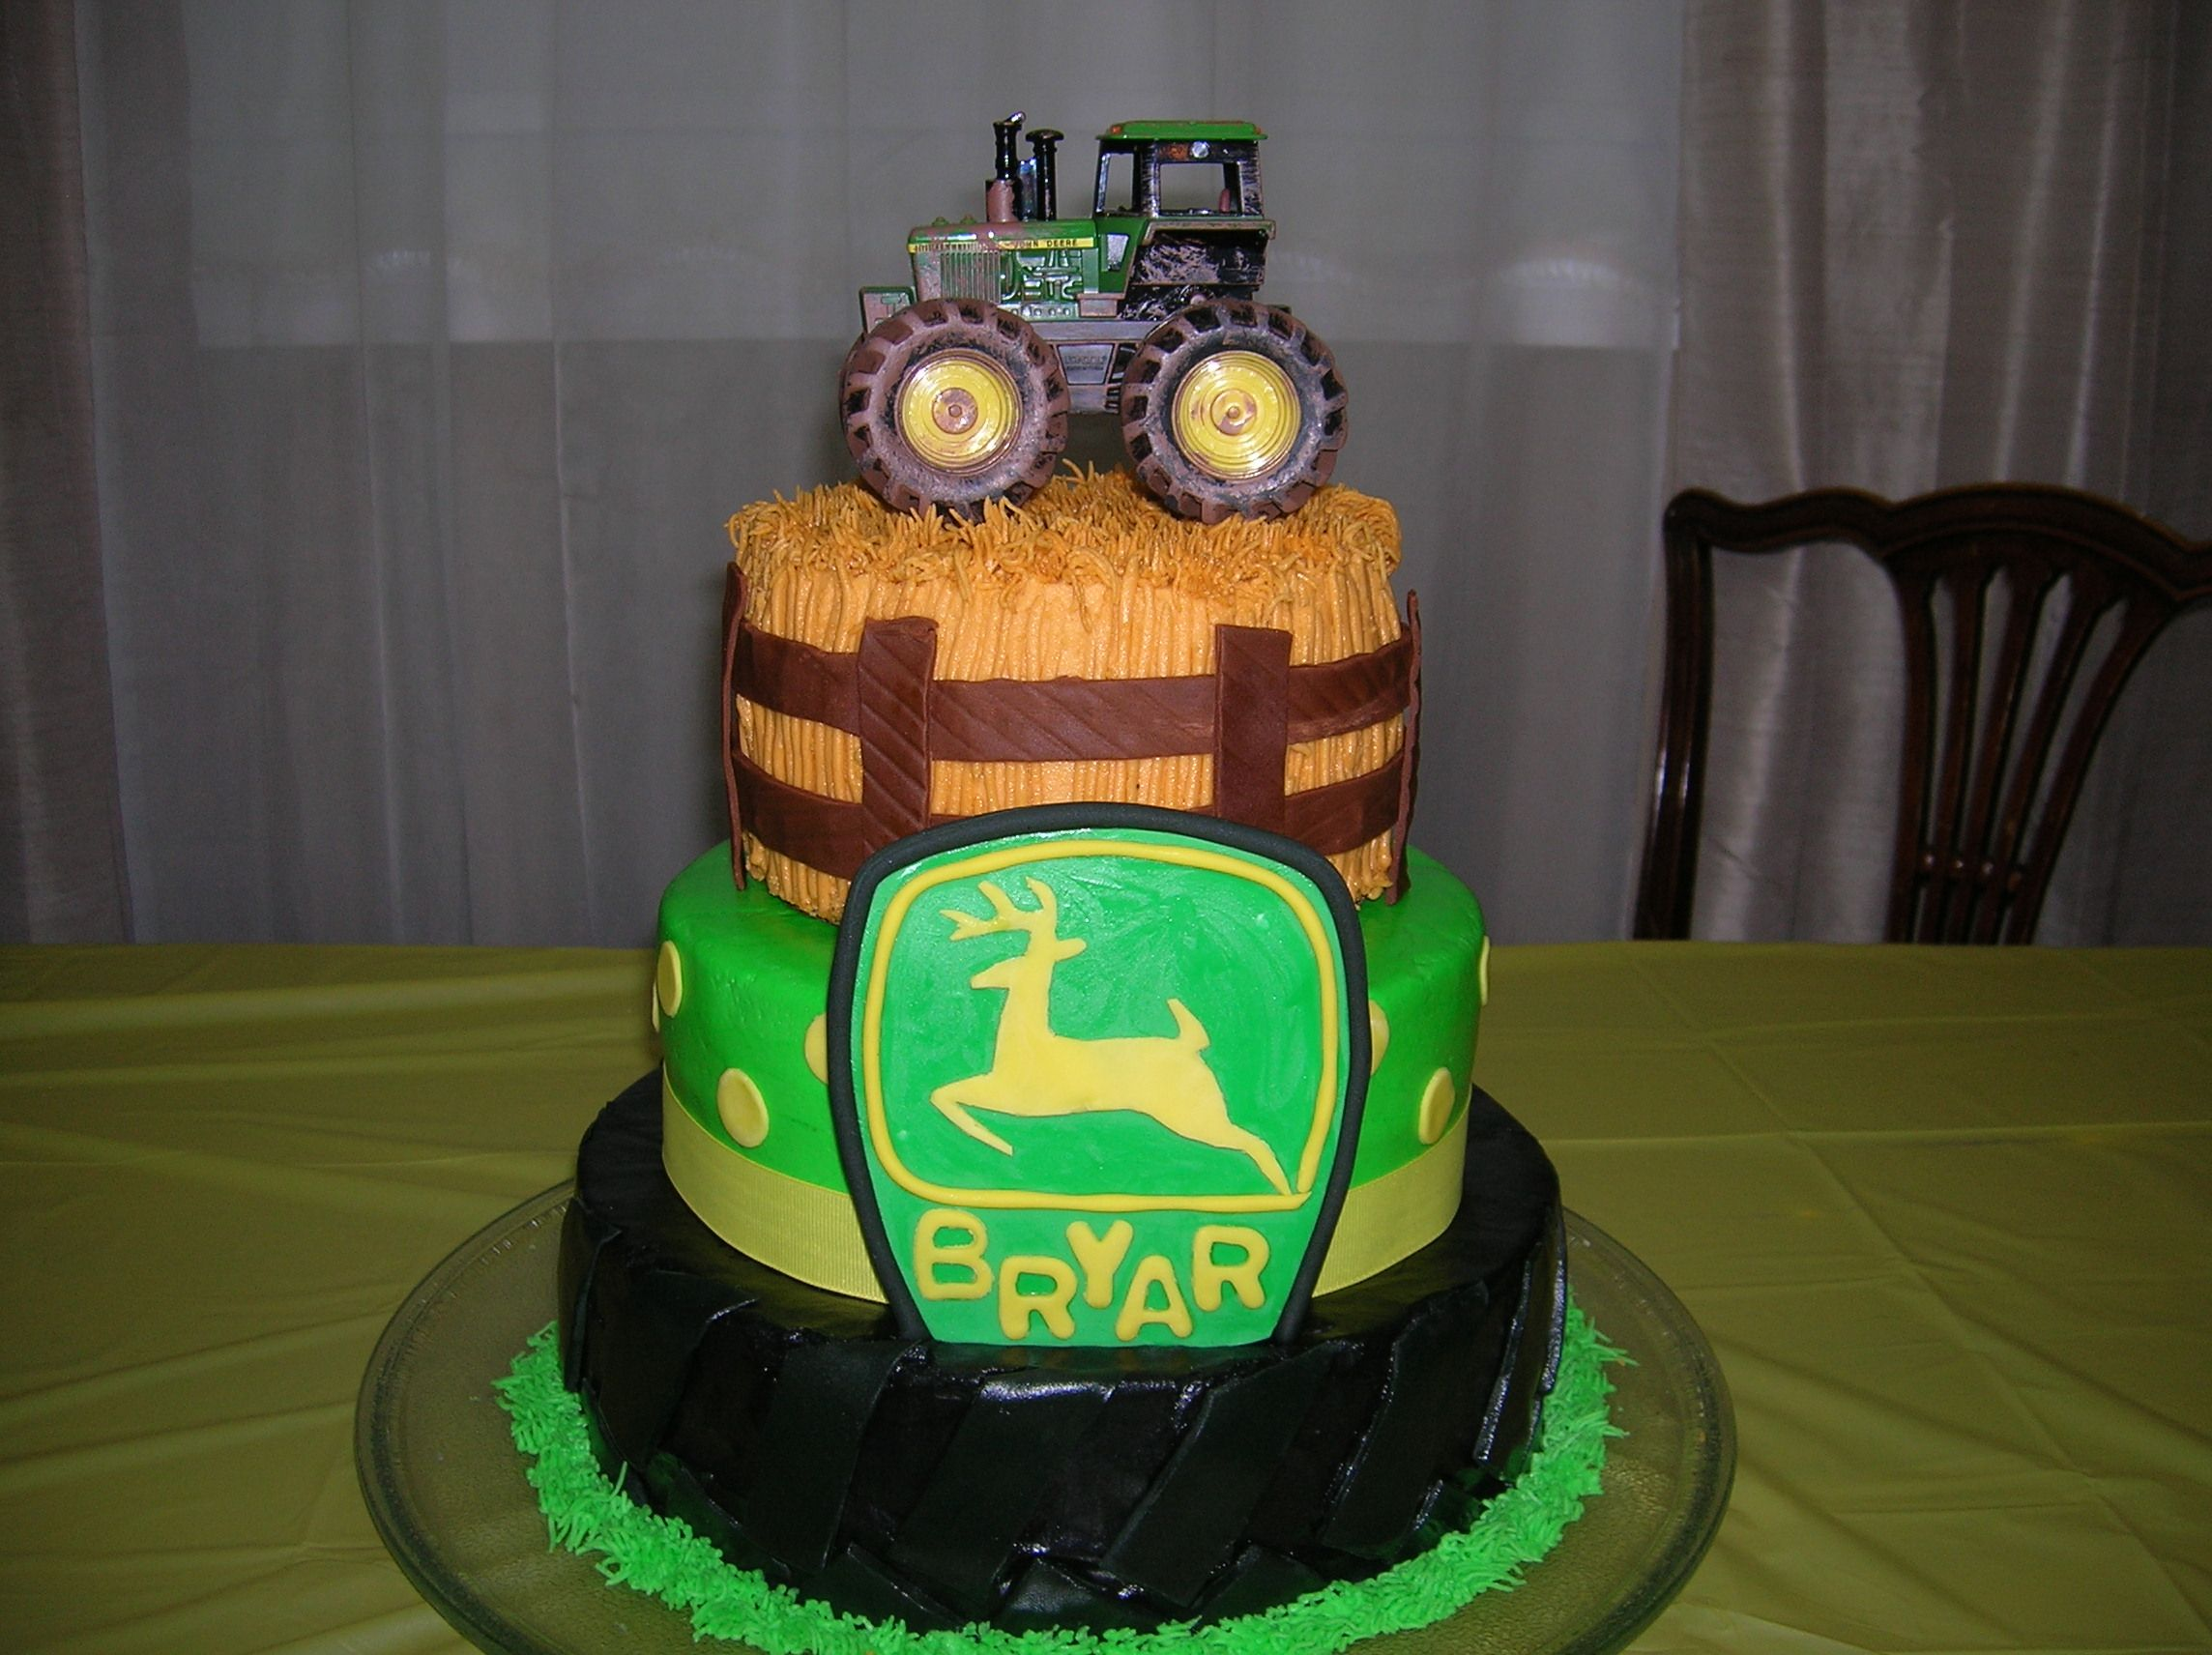 John Deere 2nd birthday cake for Bryar 108 and 6 inch layersiced